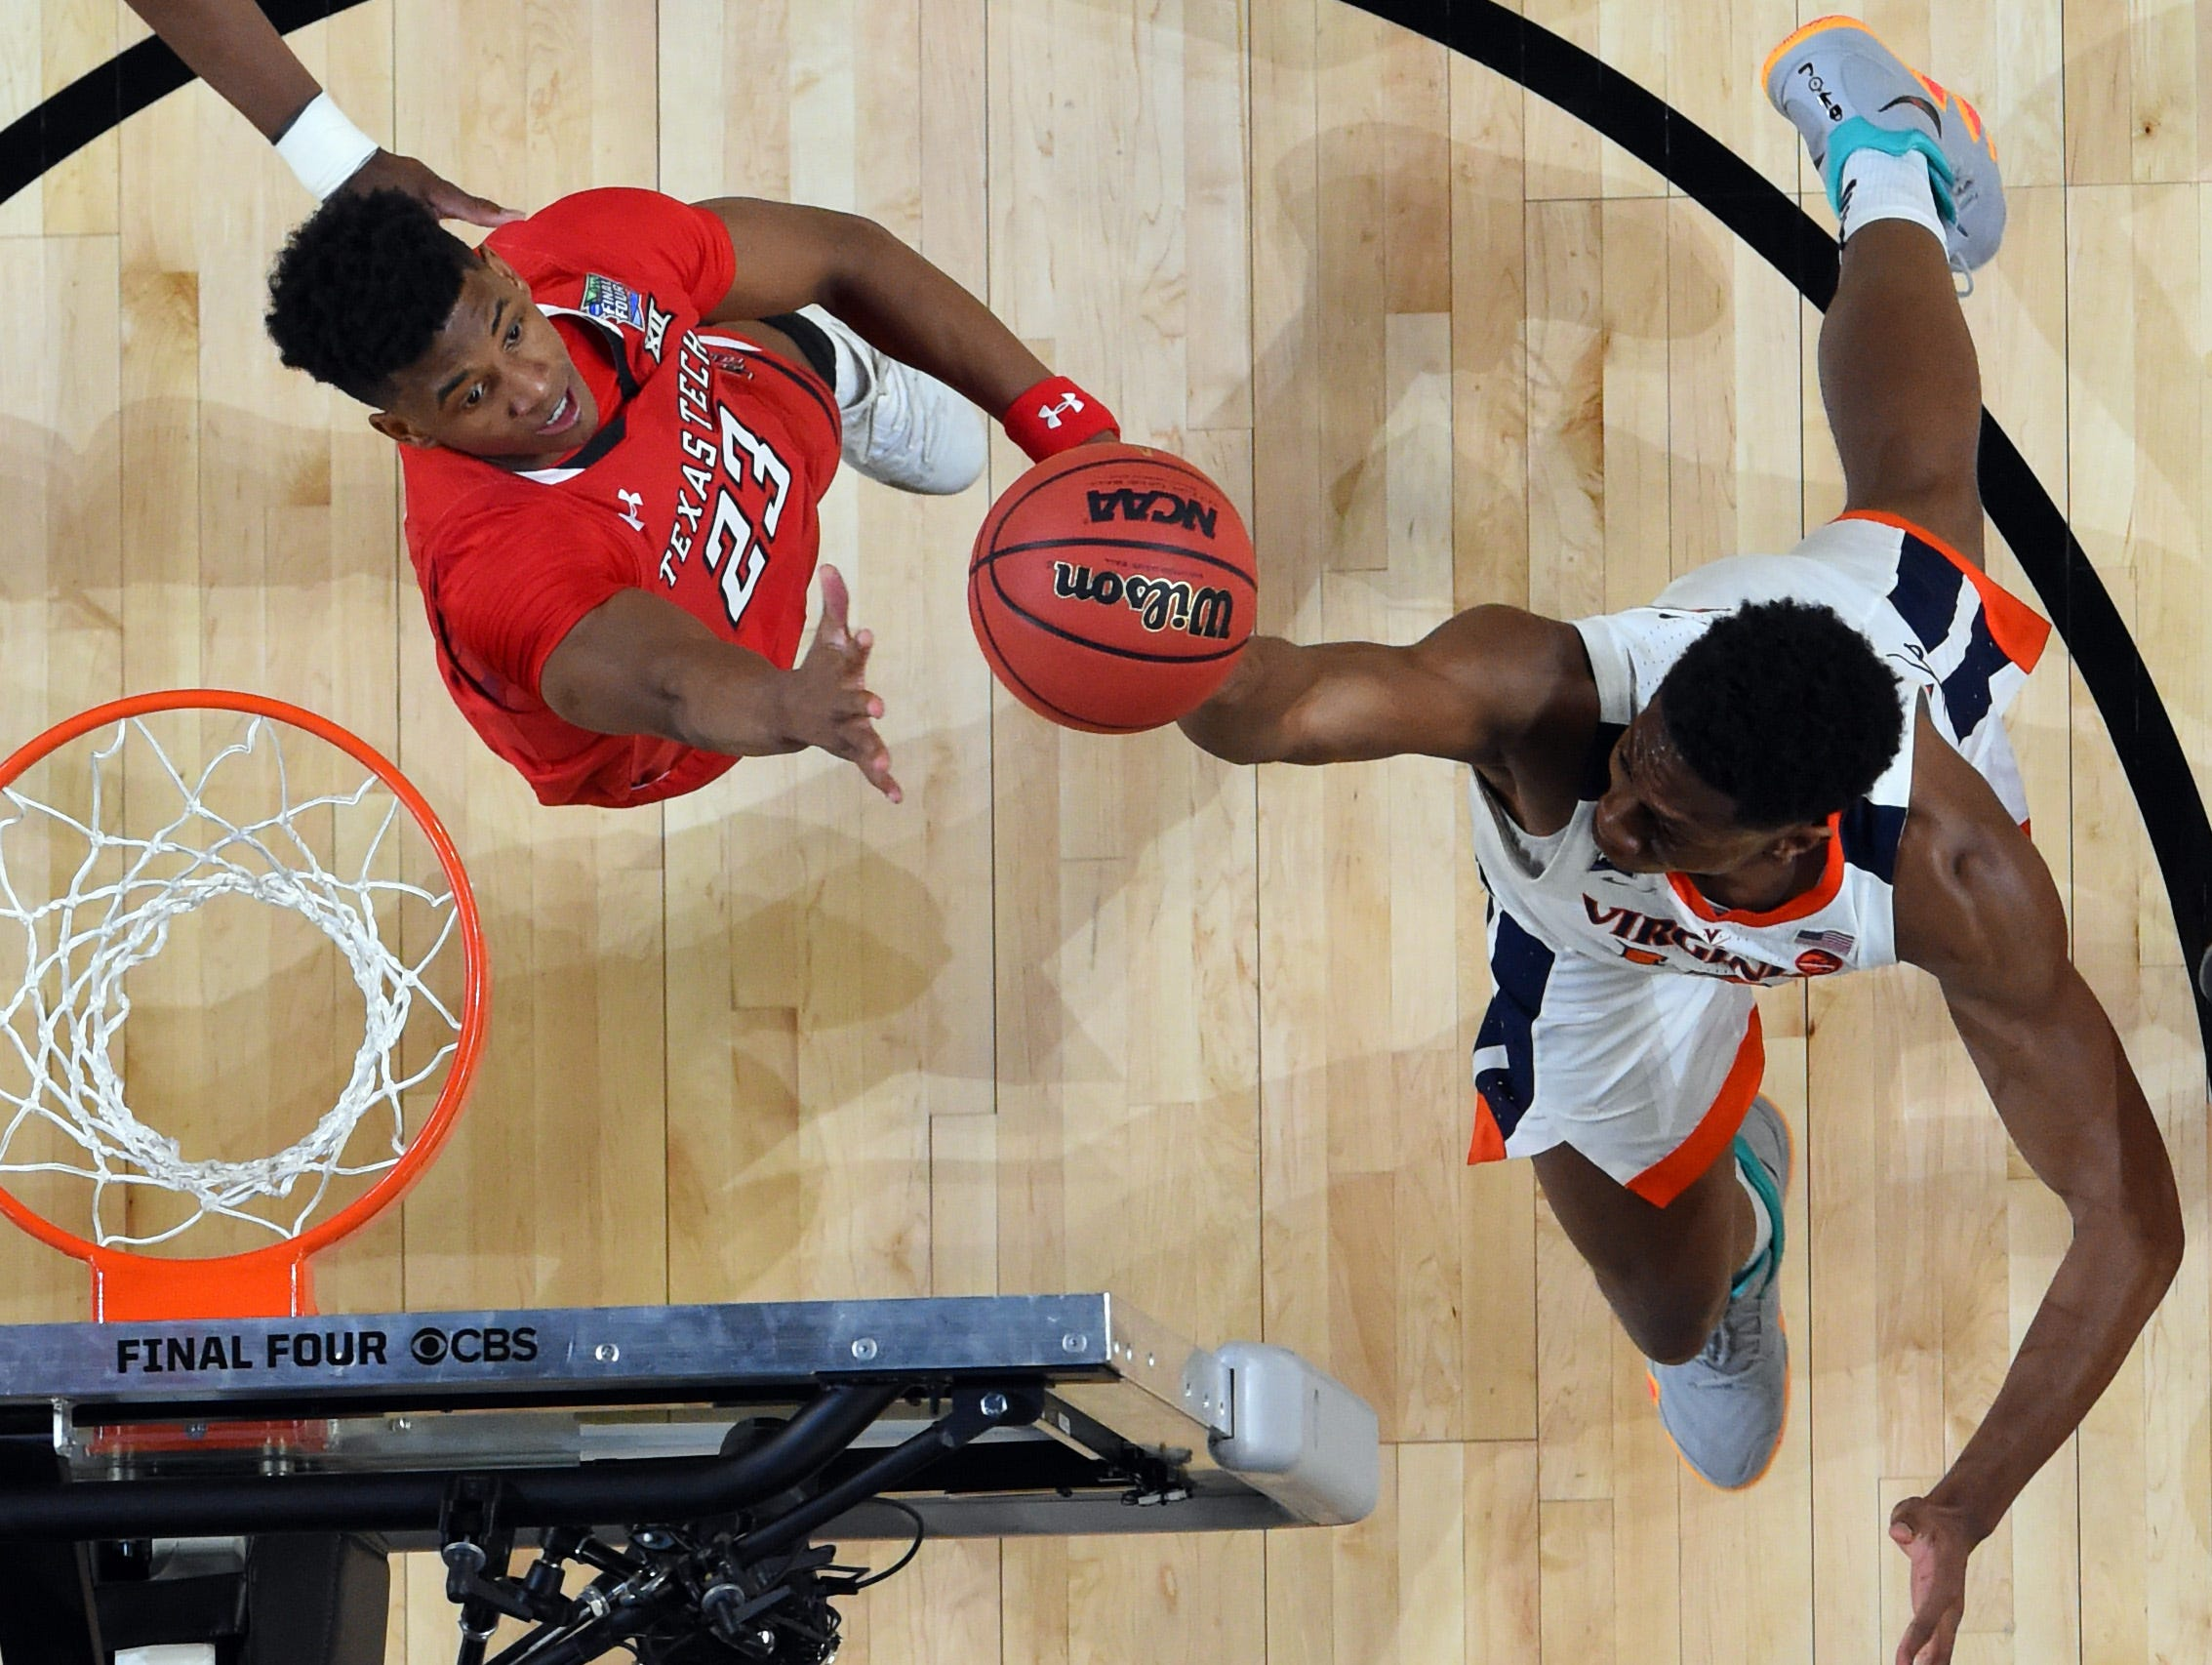 Apr 8, 2019; Minneapolis, MN, USA; Virginia Cavaliers guard De'Andre Hunter (in white) goes up for a shot as Texas Tech Red Raiders guard Jarrett Culver (23) defends during the first half in the championship game of the 2019 men's Final Four at US Bank Stadium. Mandatory Credit: Bob Donnan-USA TODAY Sports